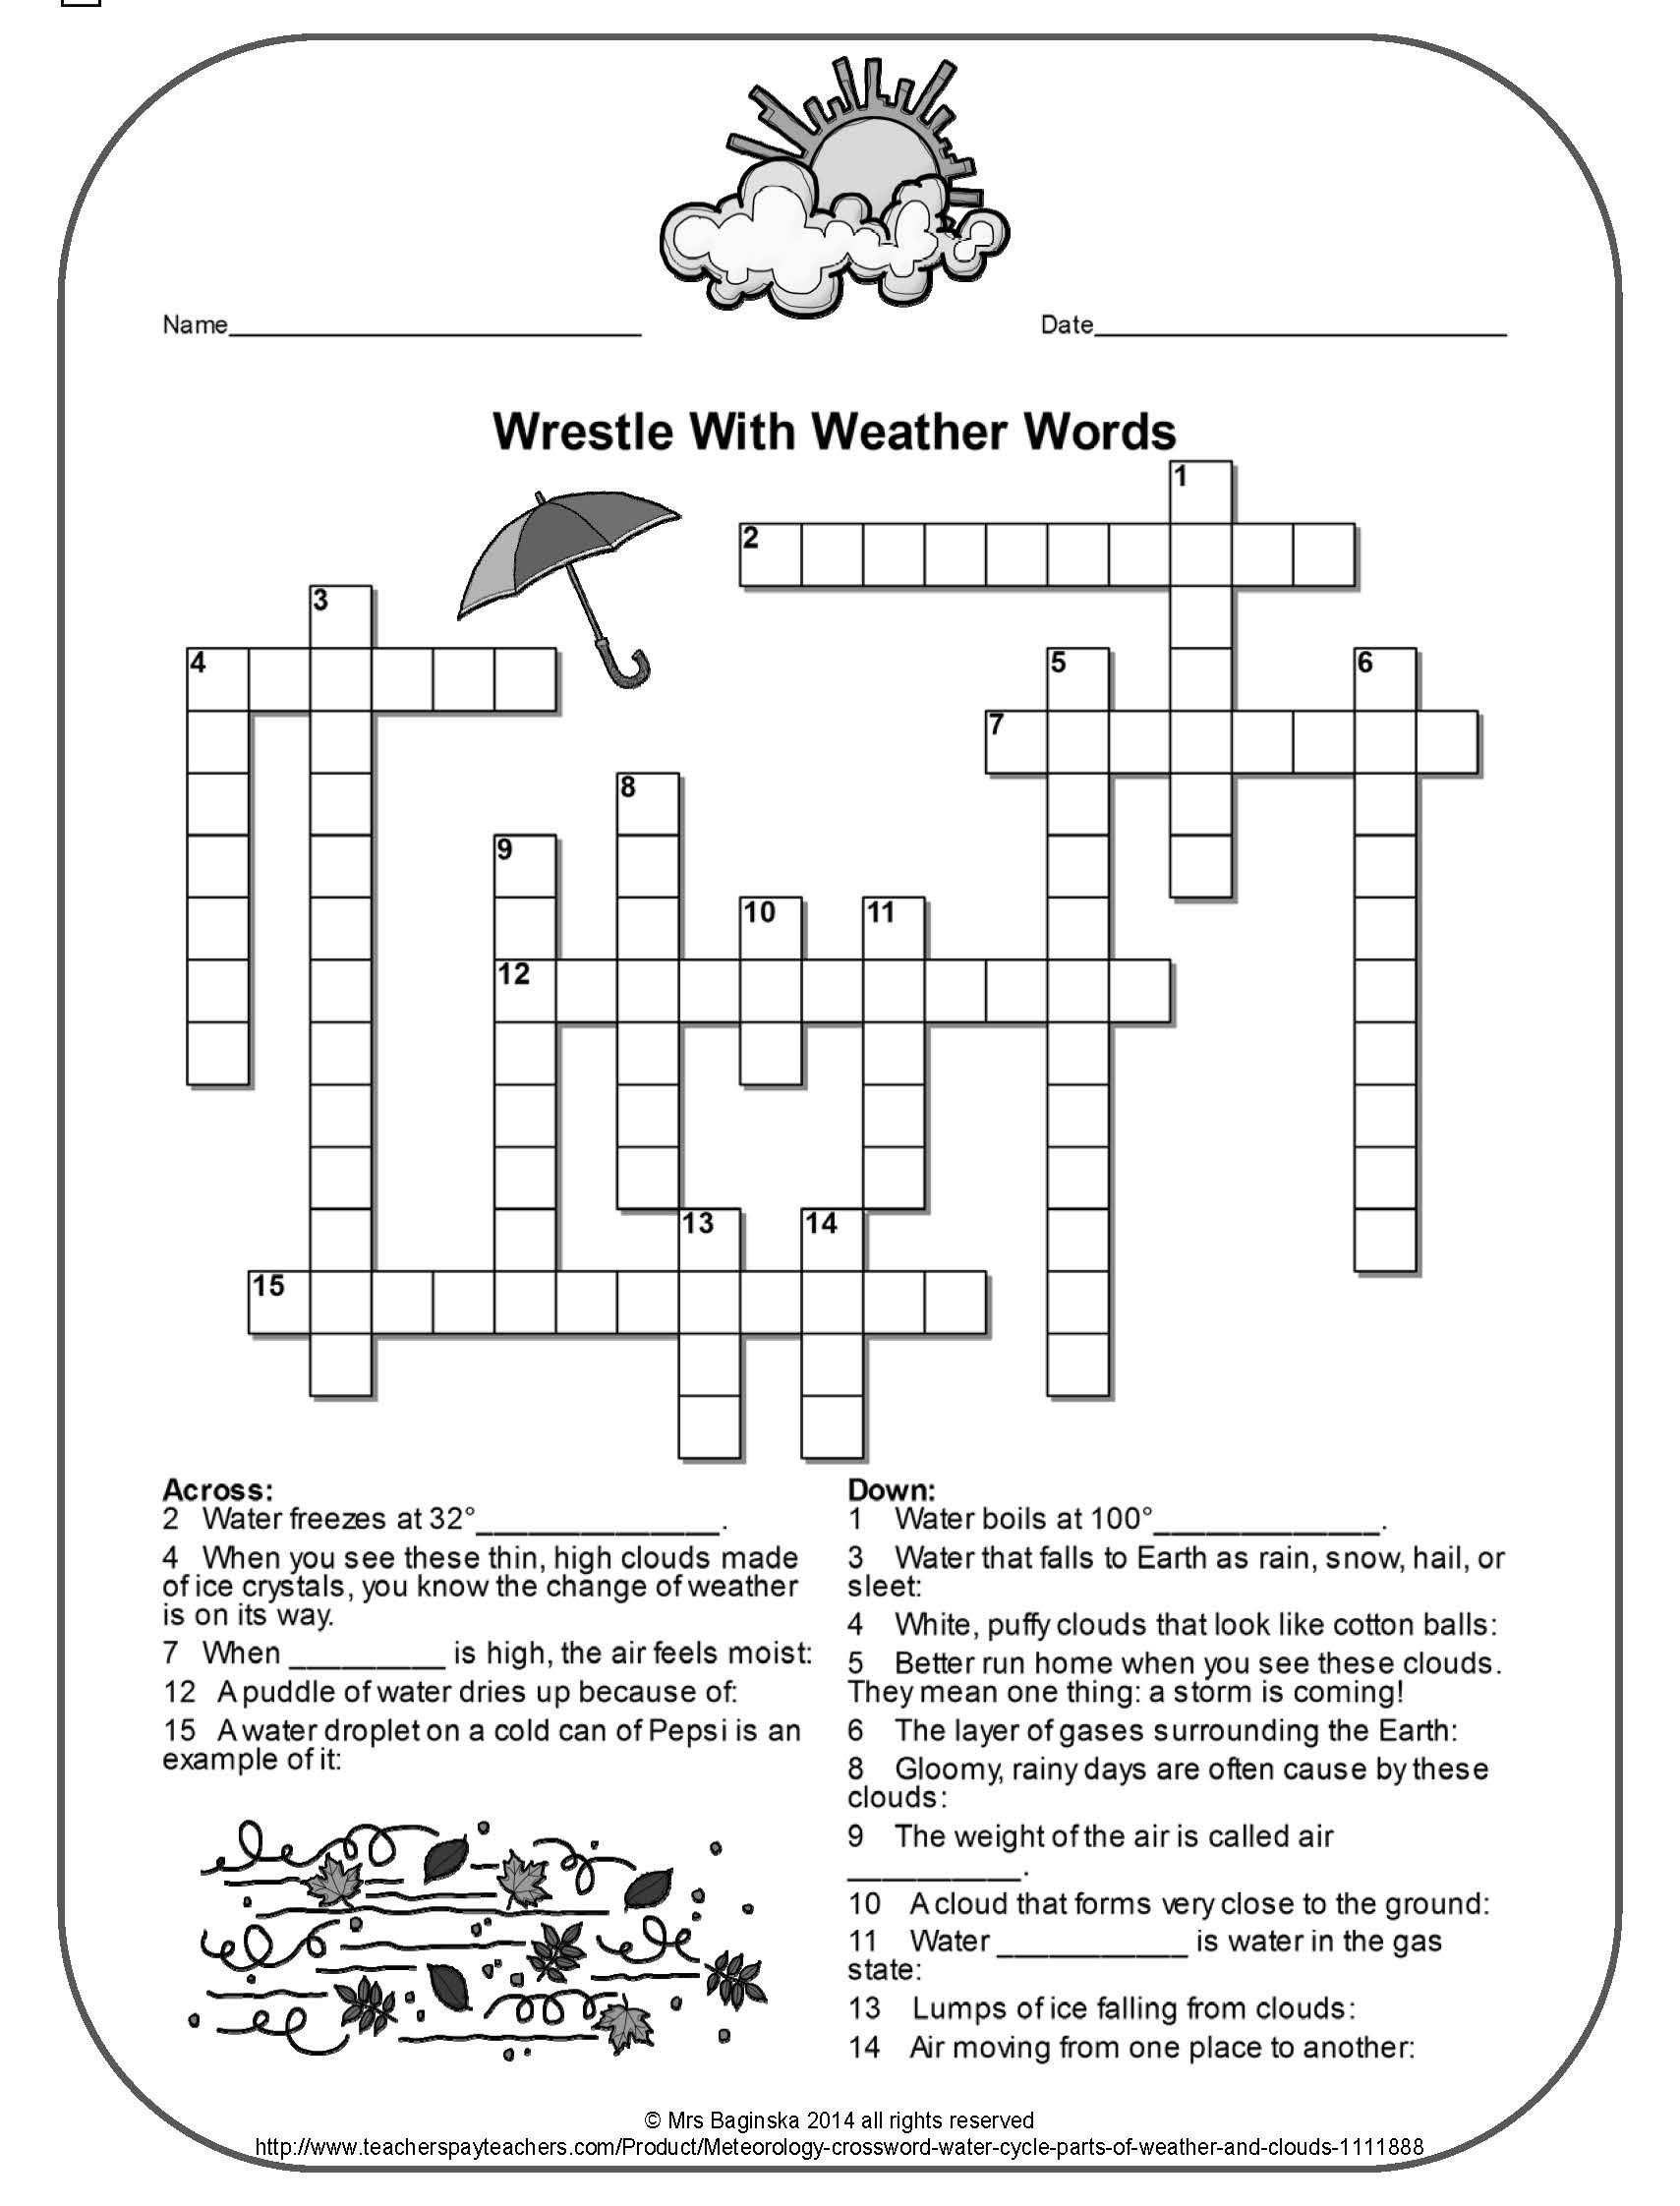 Pina Demanding 4Th Grade Teacher On Fun Stuff For Primary Grades - 4Th Grade Printable Crossword Puzzles